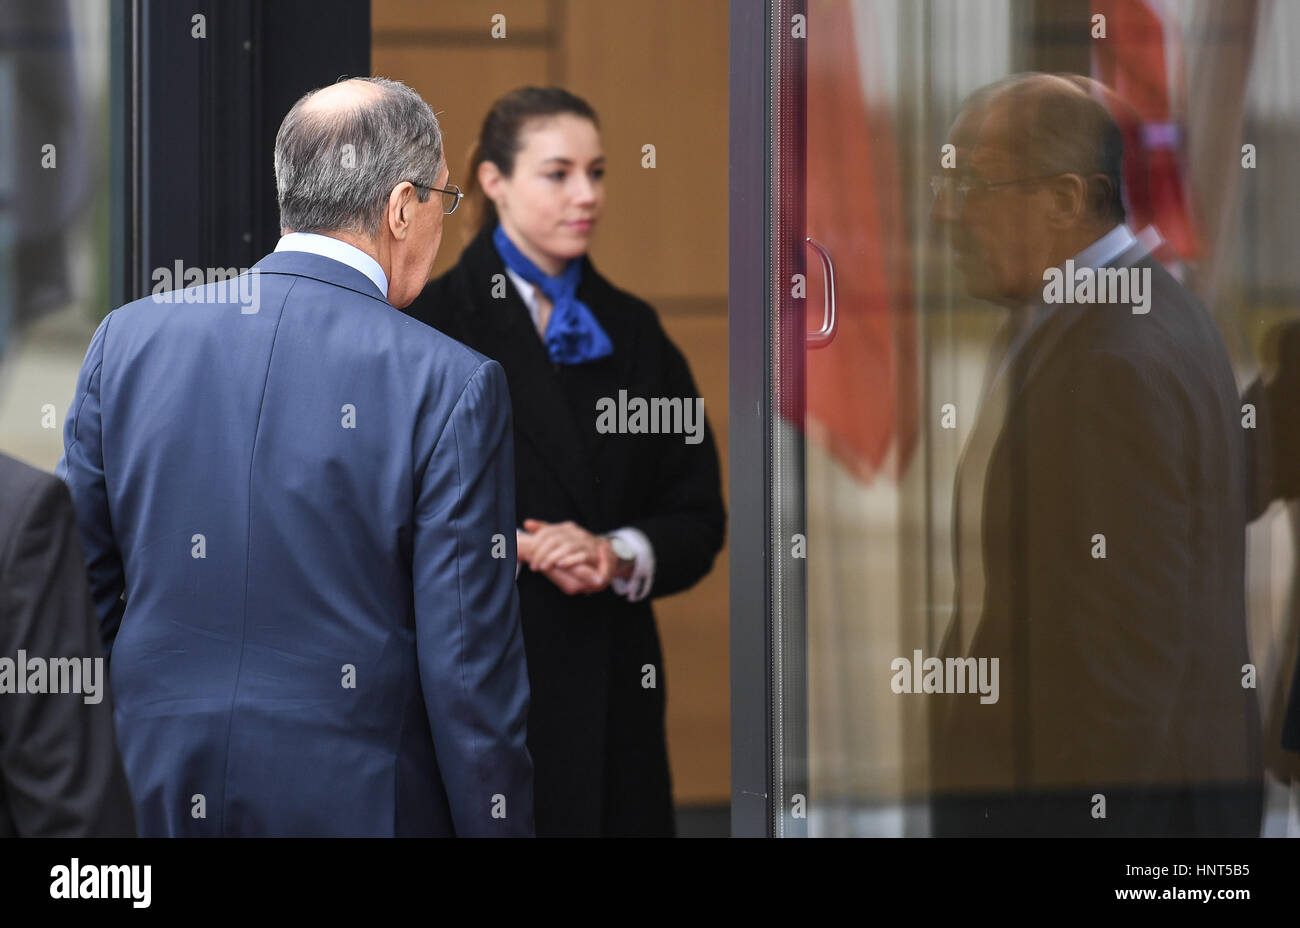 Bonn, Germany. 16th Feb, 2017. The Russian foreign minister Sergey Lavrov arrives at the G20 meeting of foreign - Stock Image